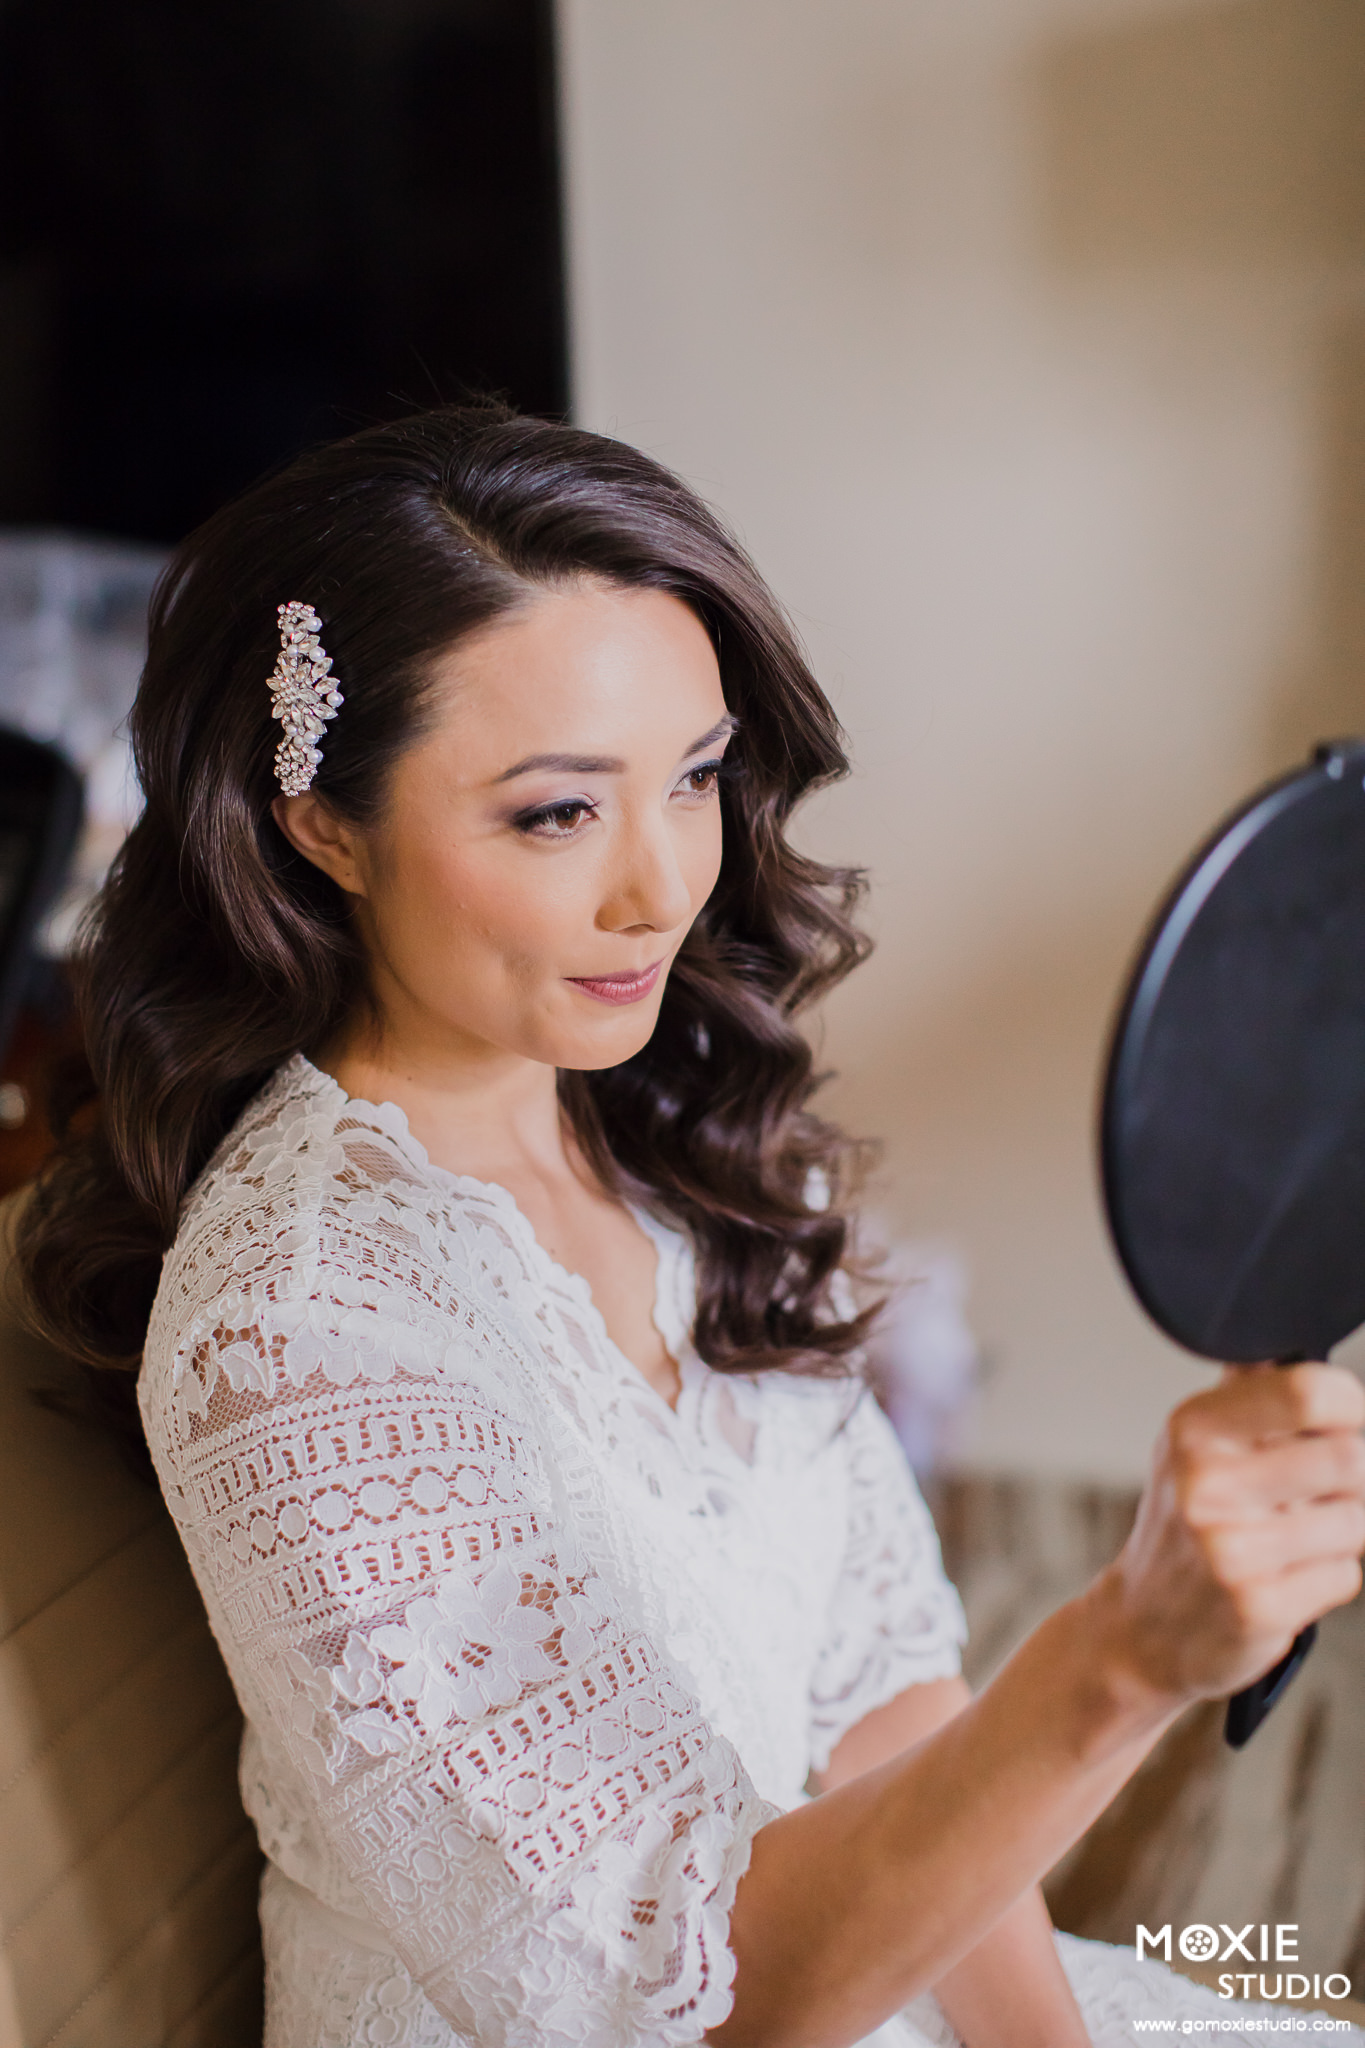 Vintage Glam hair and makeup